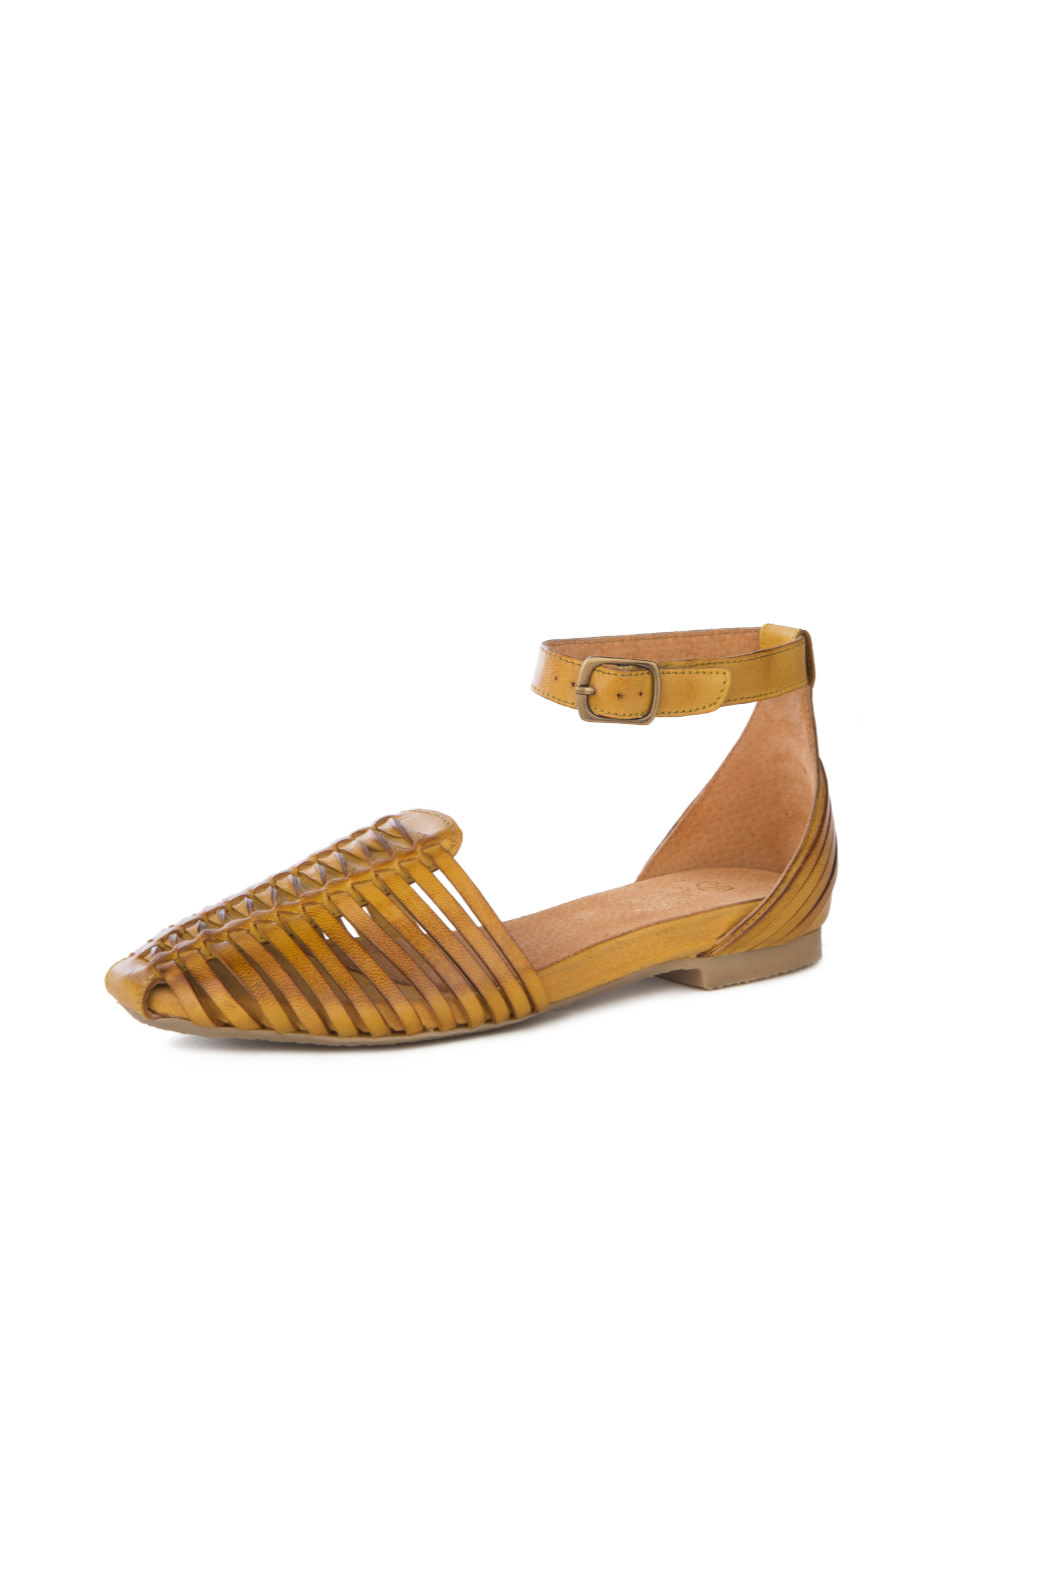 Seychelles Bits and Pieces Mustard Sandal